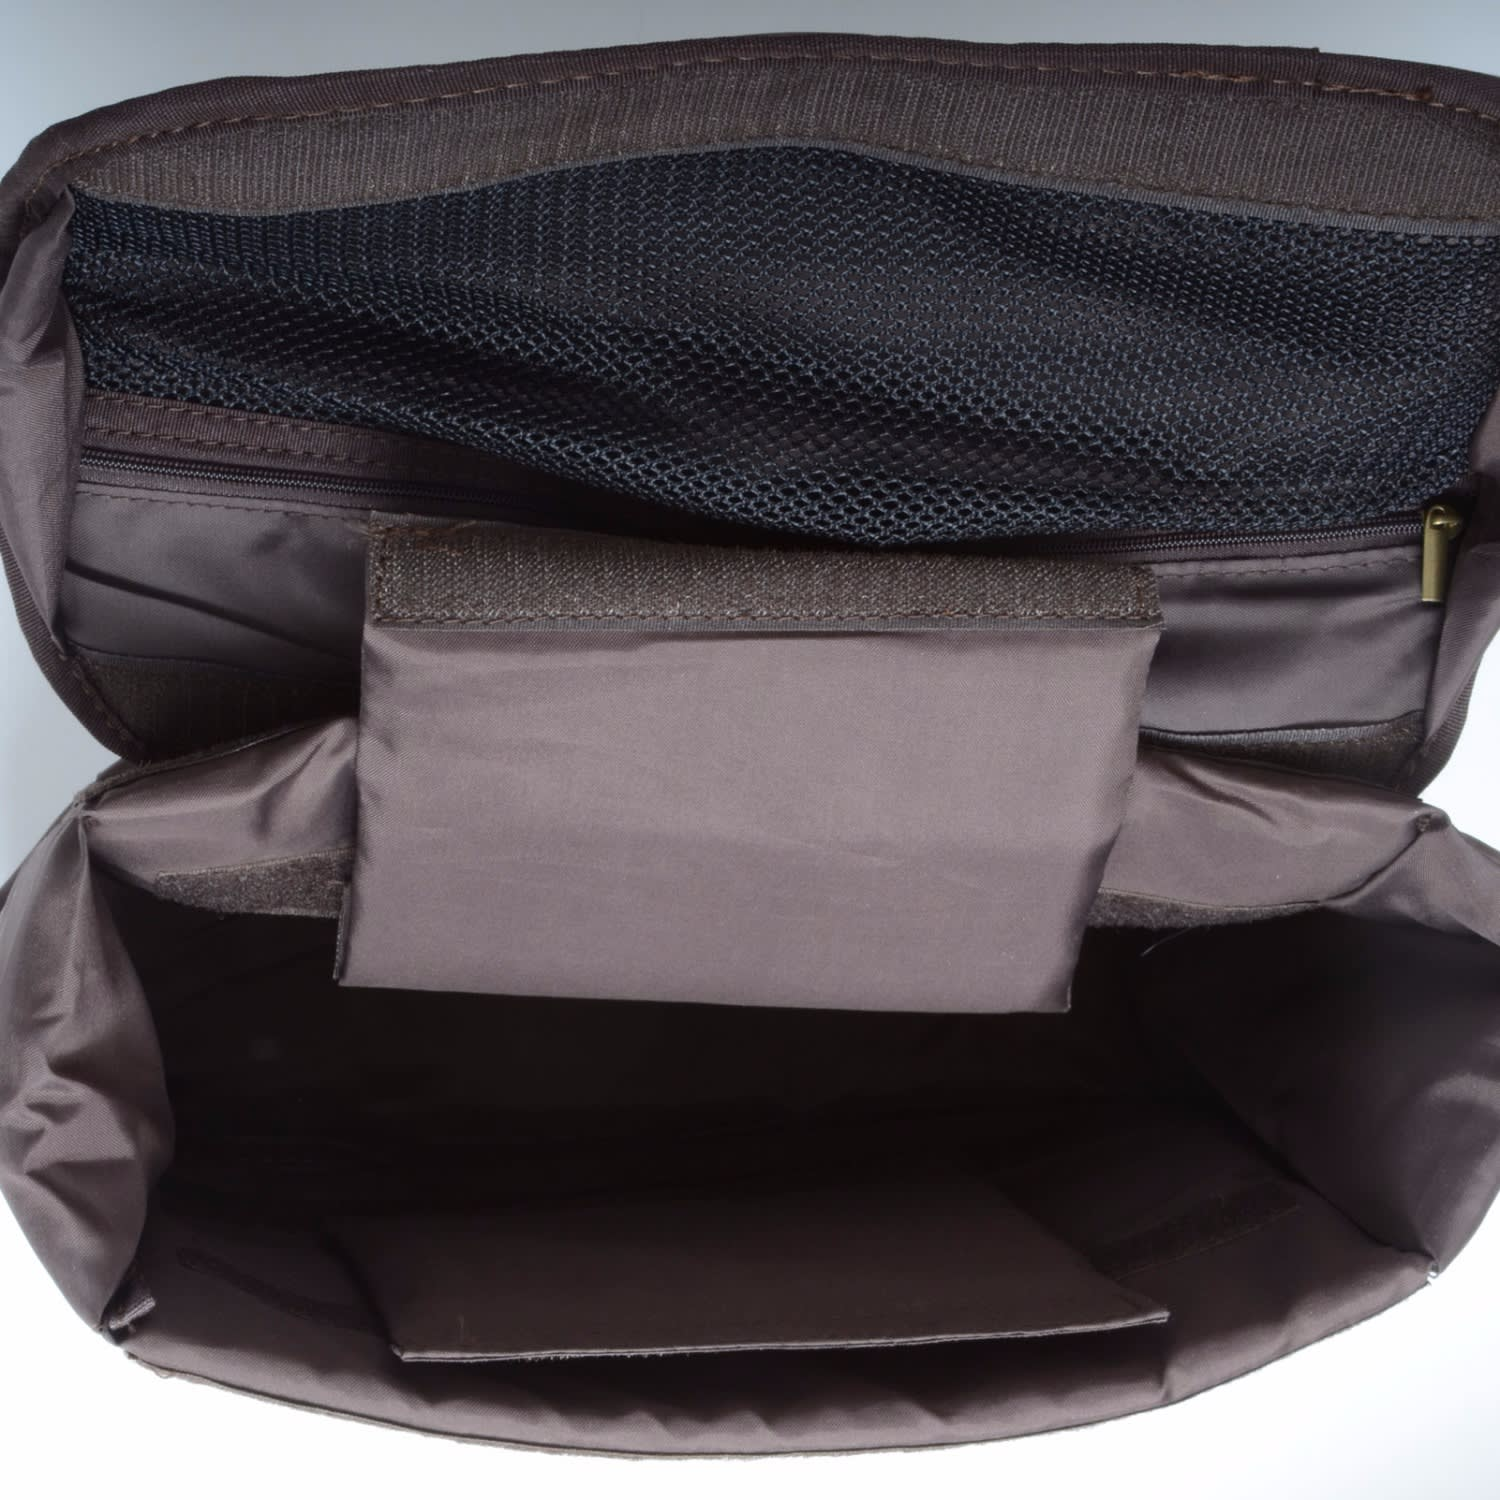 eed7a363aa Waxed Canvas Messenger Bag With Dslr Camera Sleeve in Brown image